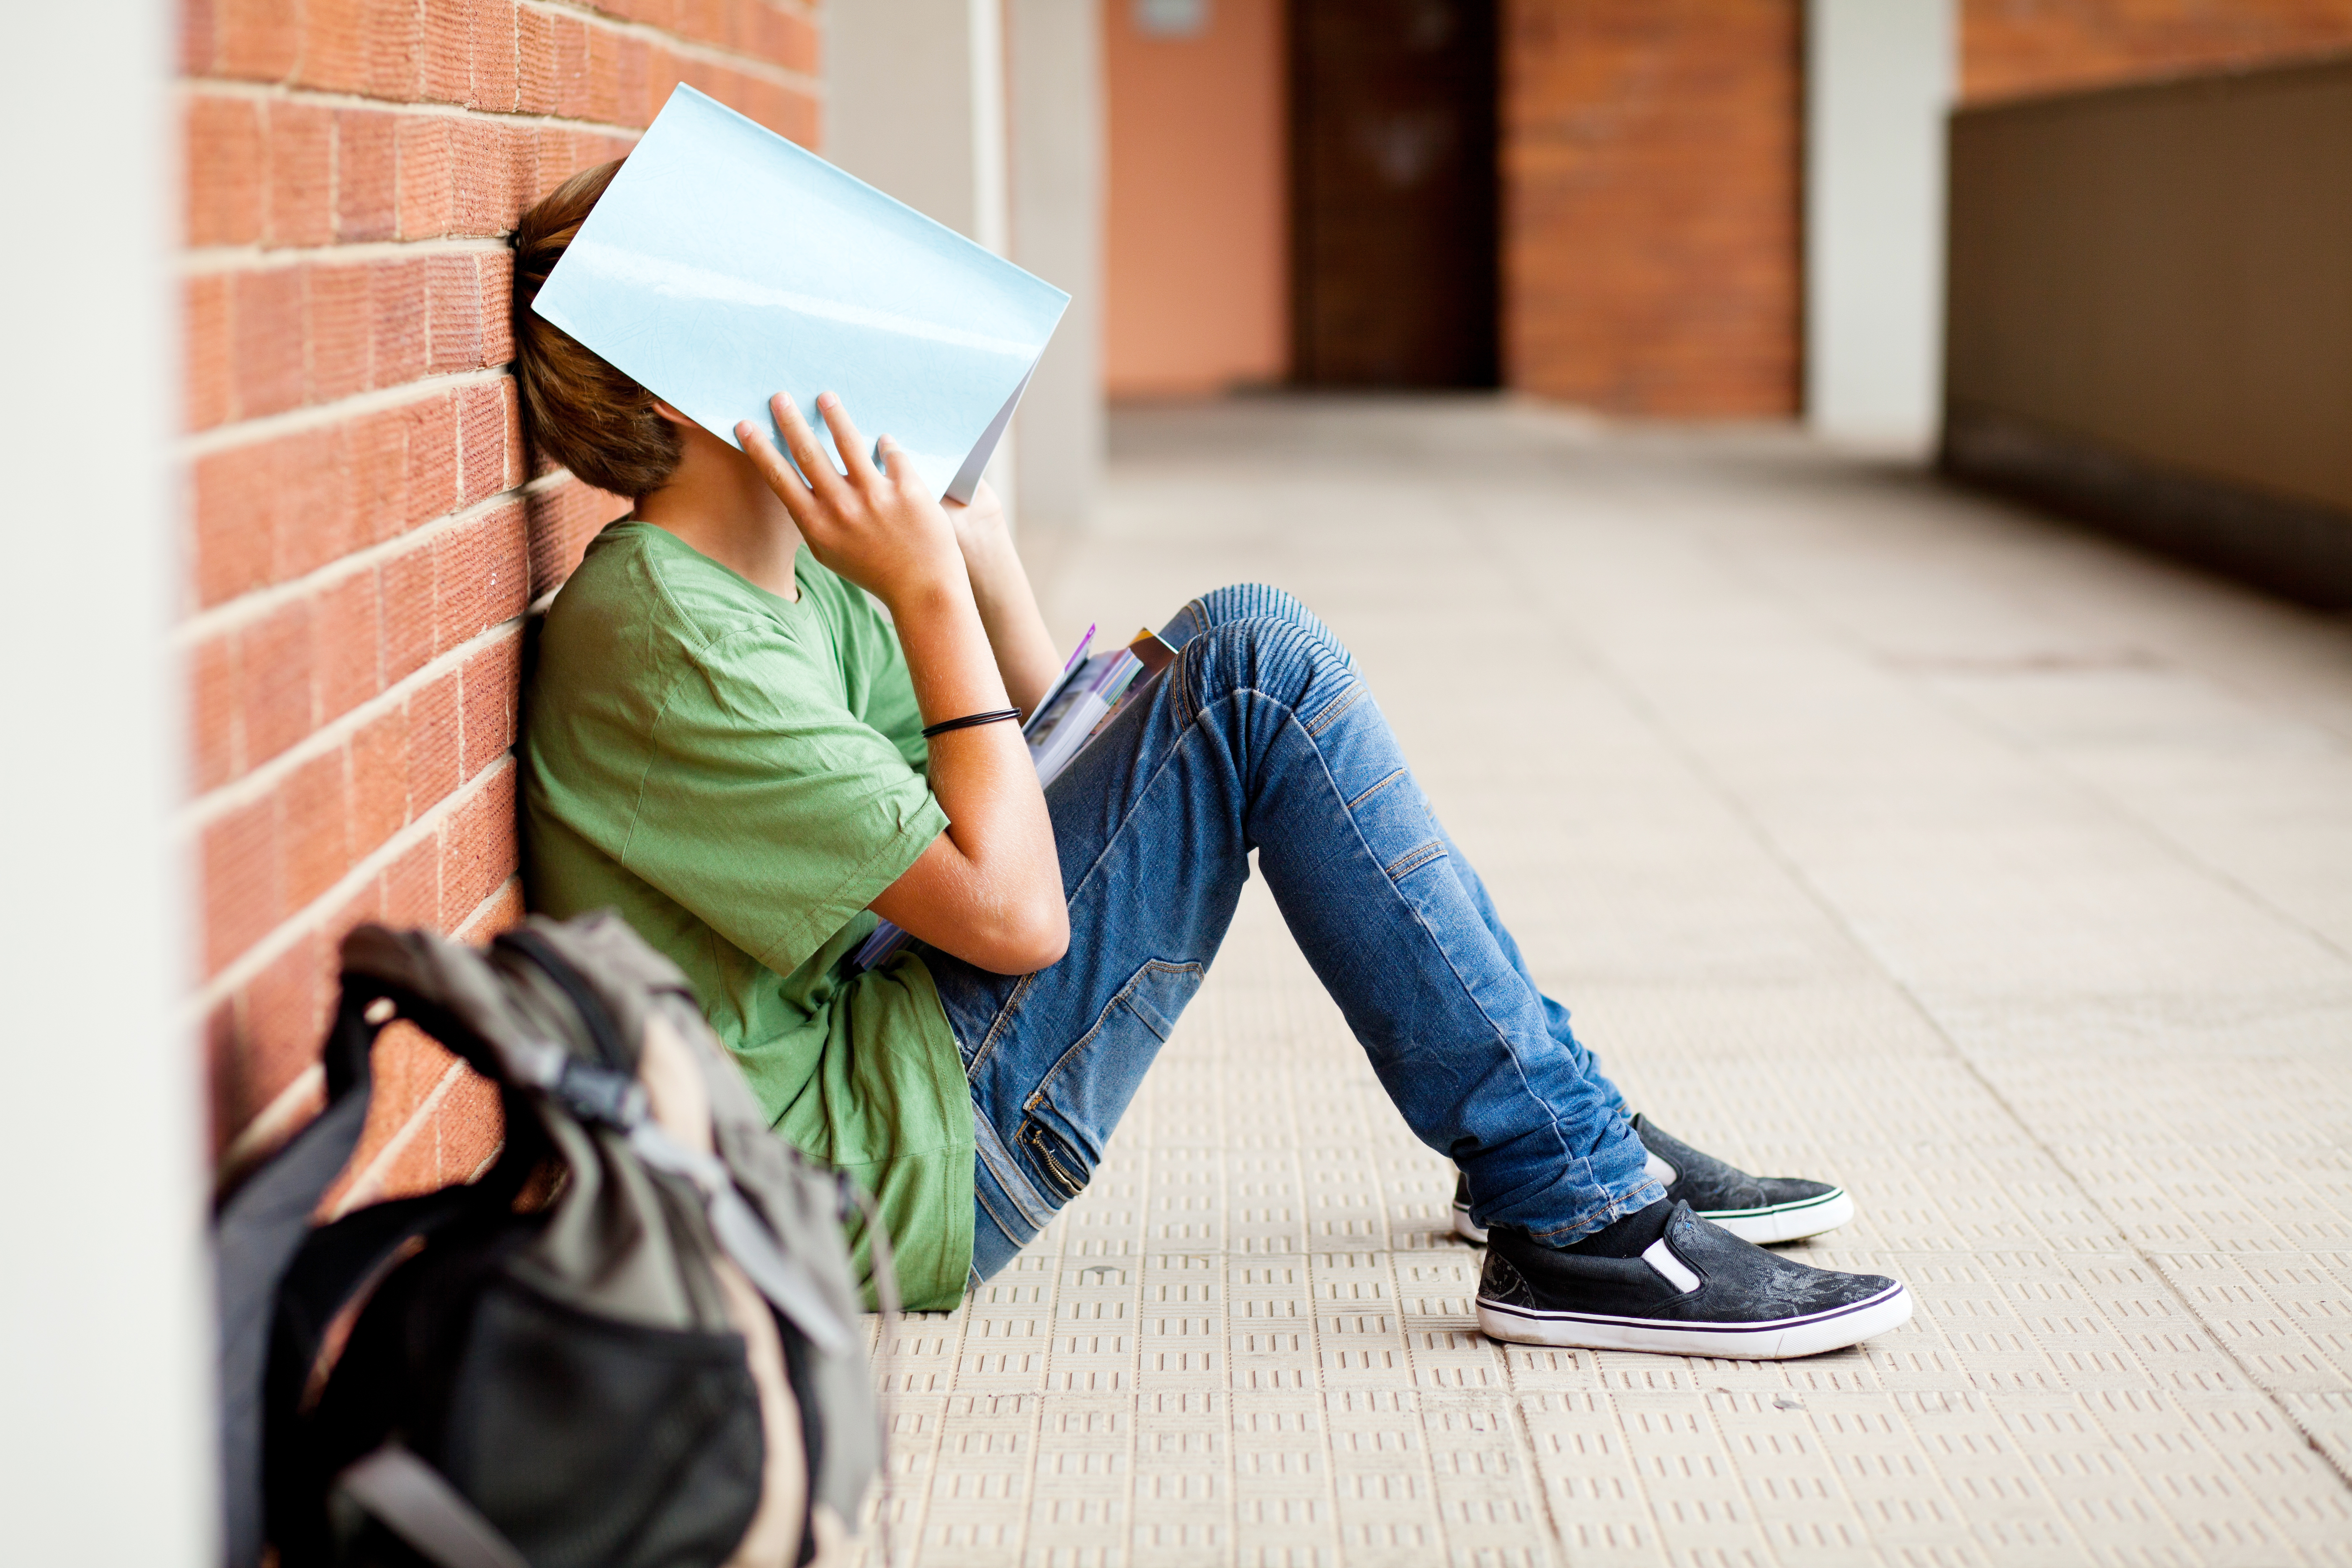 a tired student sitting on the ground using school book to cover his face, maybe stressed, anxious or frustrated